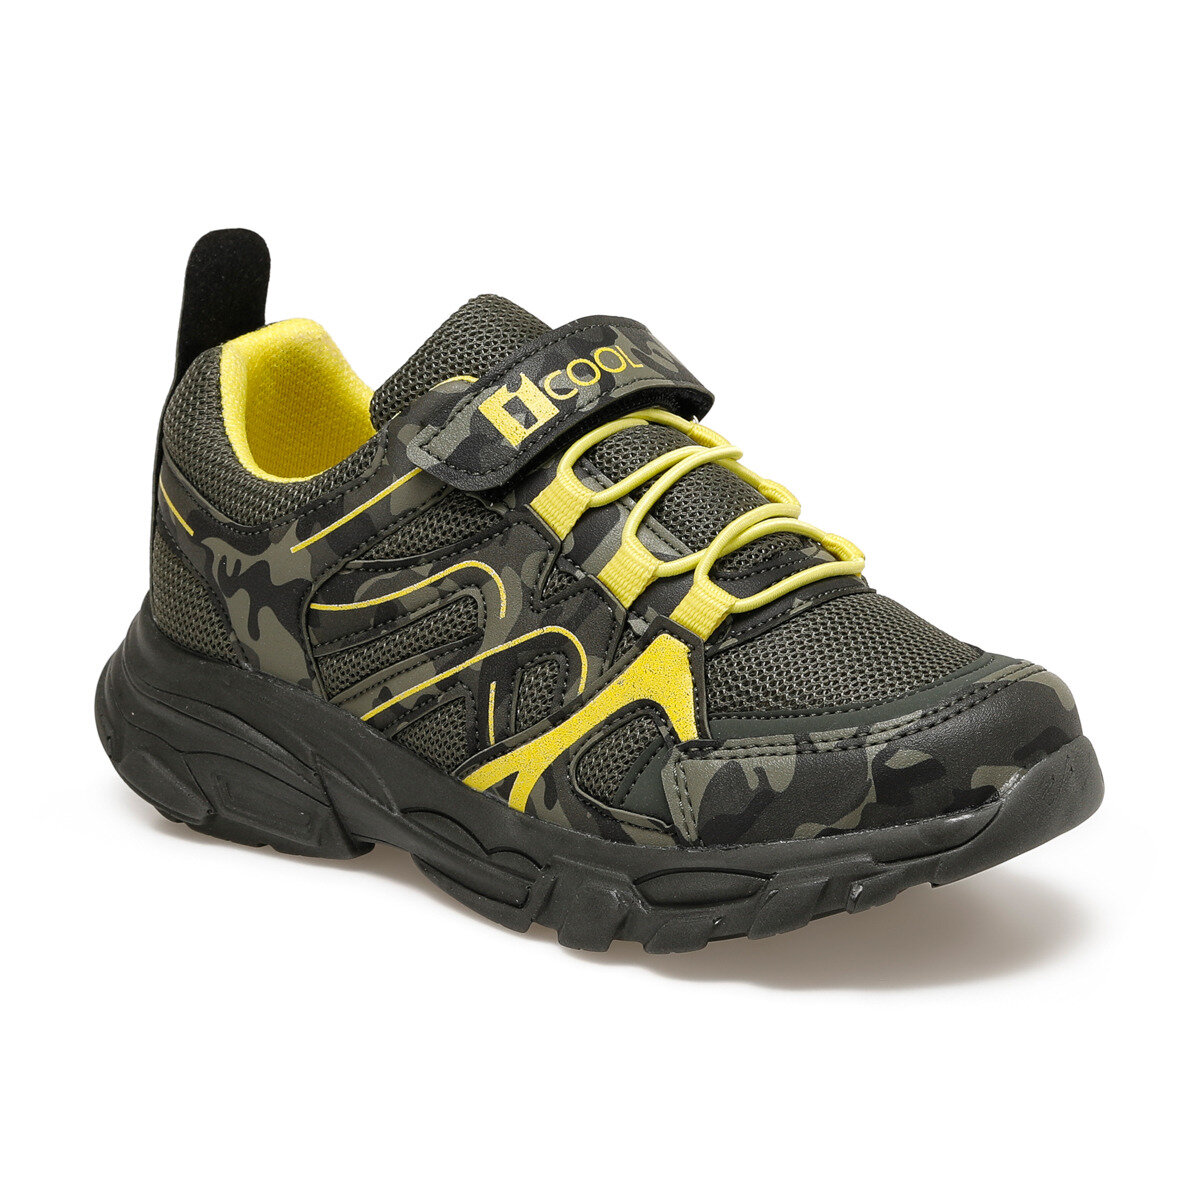 FLO HUGO Camouflage Color Male Child Hiking Shoes I-Cool